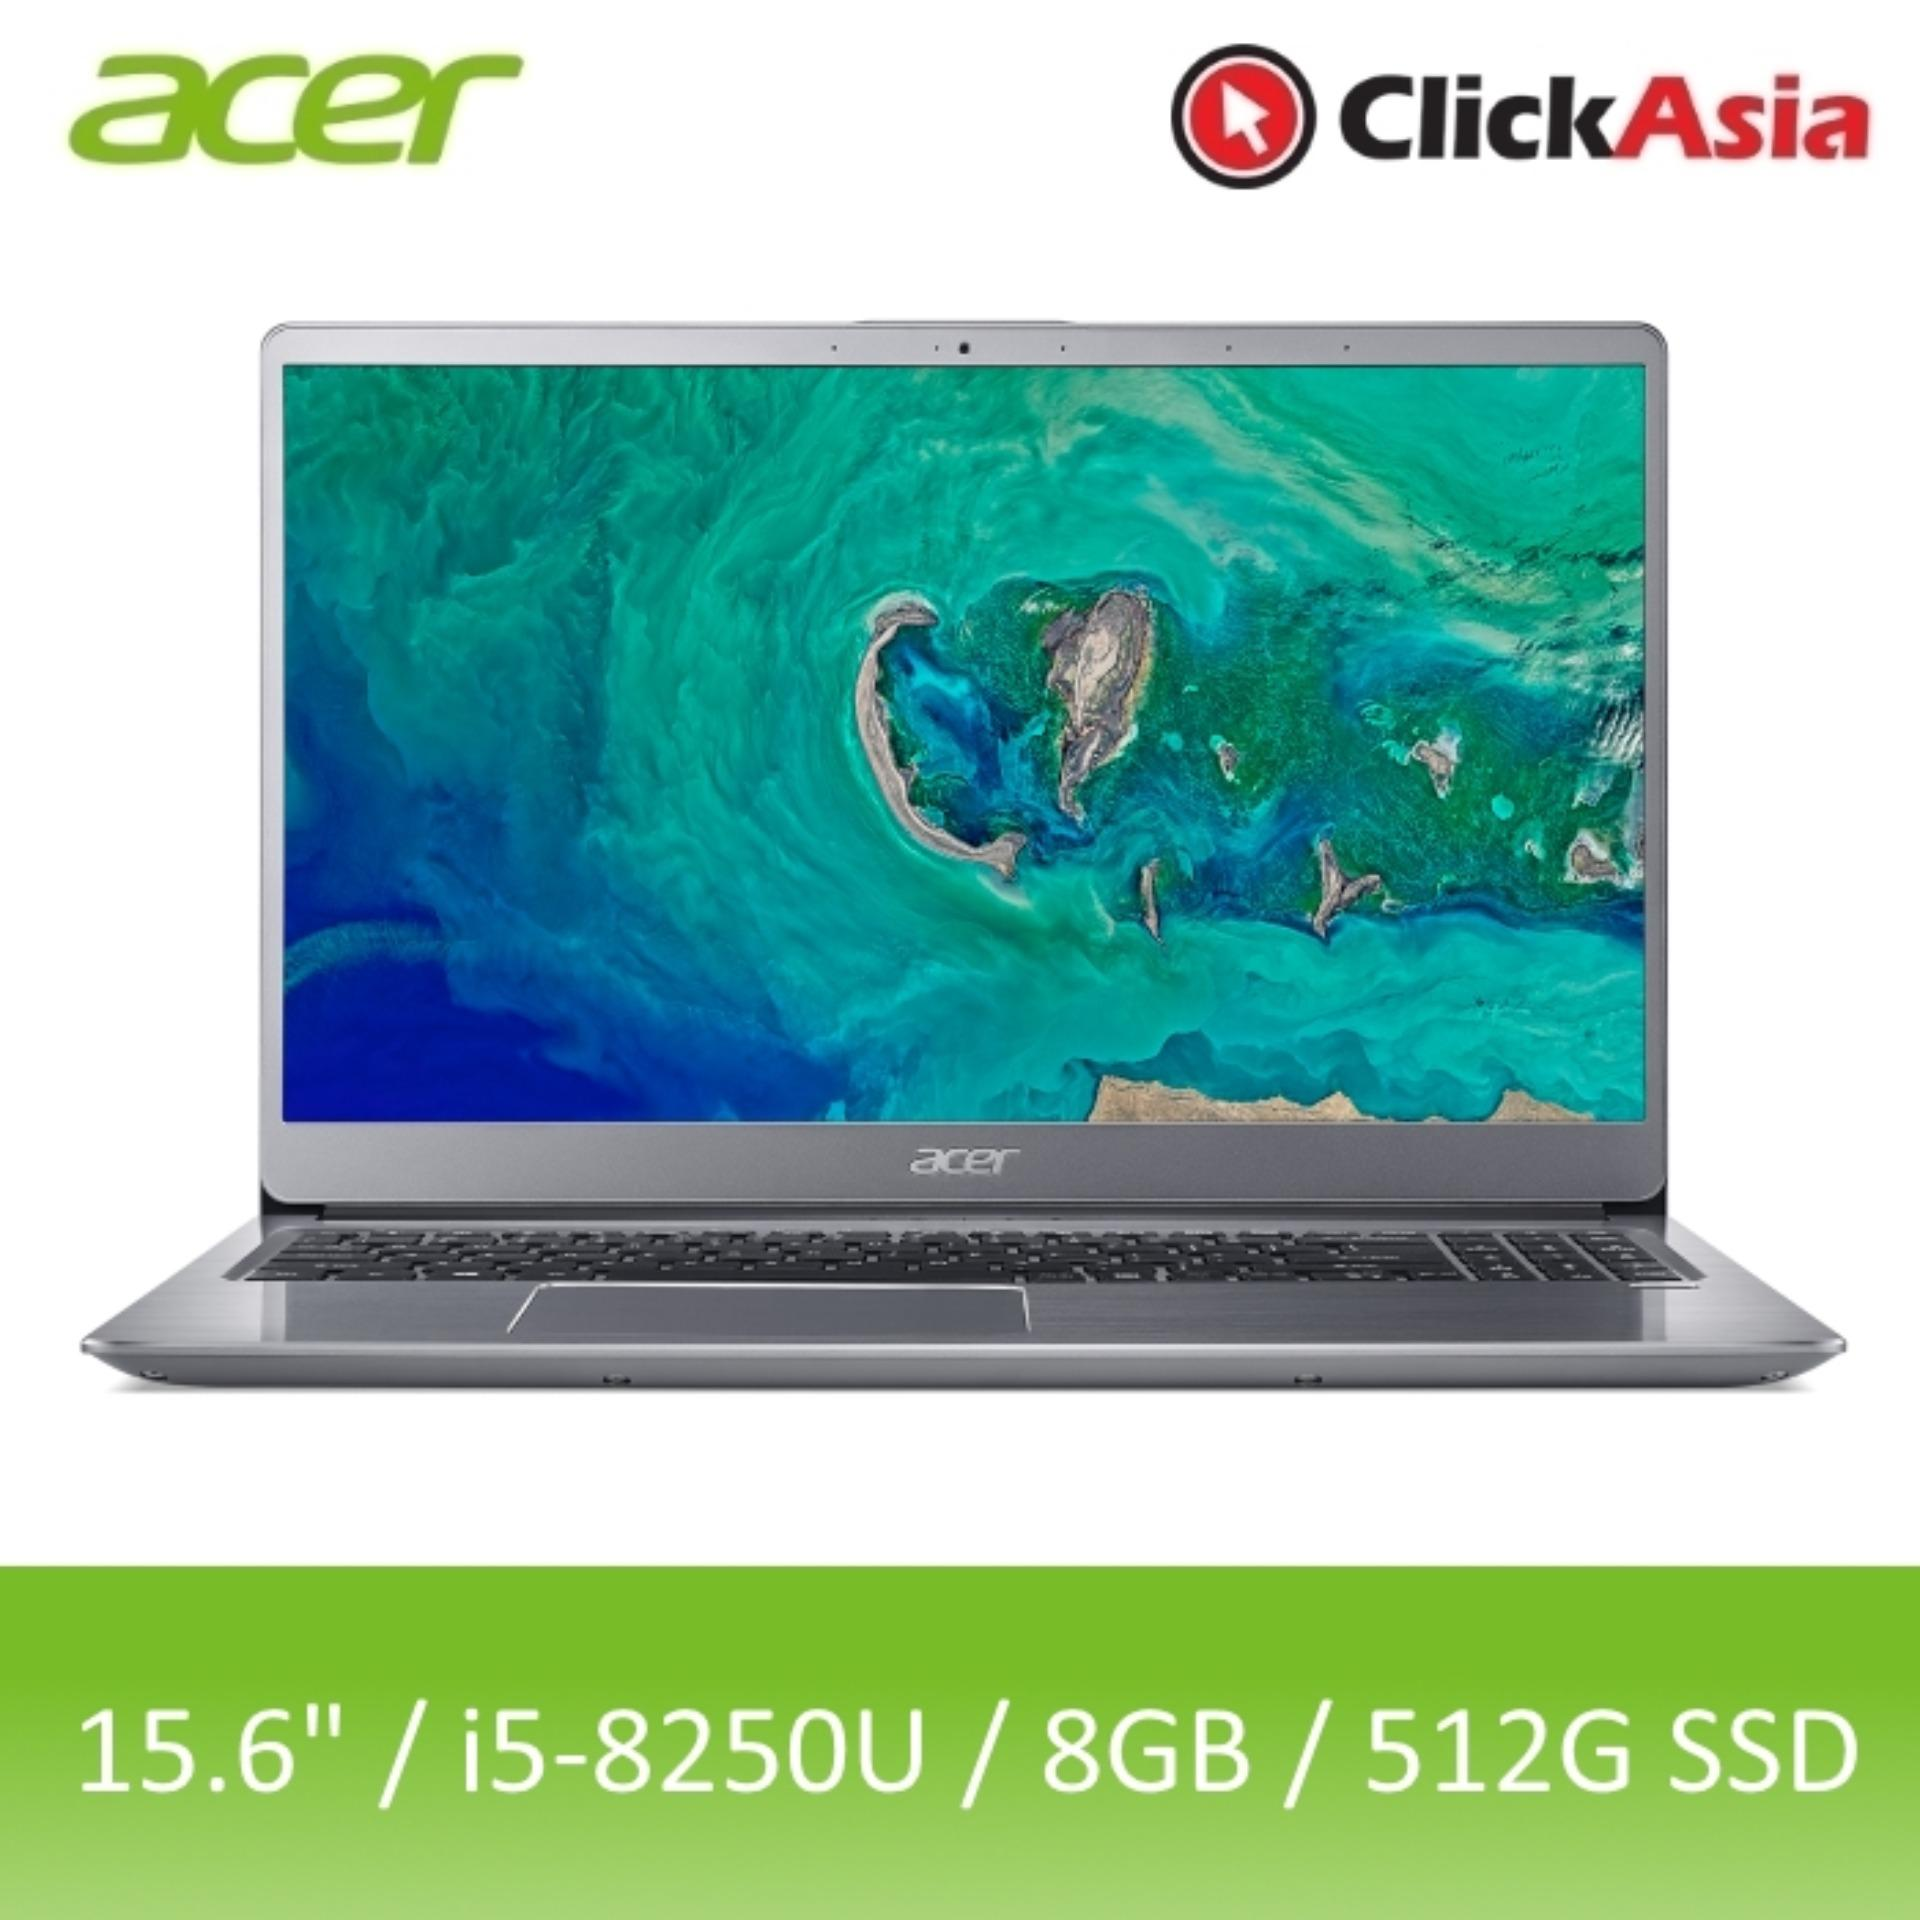 Acer Swift 3 (SF315-52G-57GG) - 15.6 FHD/i5-8250U/8GB DDR4/512GB SSD/Nvidia MX150/W10 (Silver)